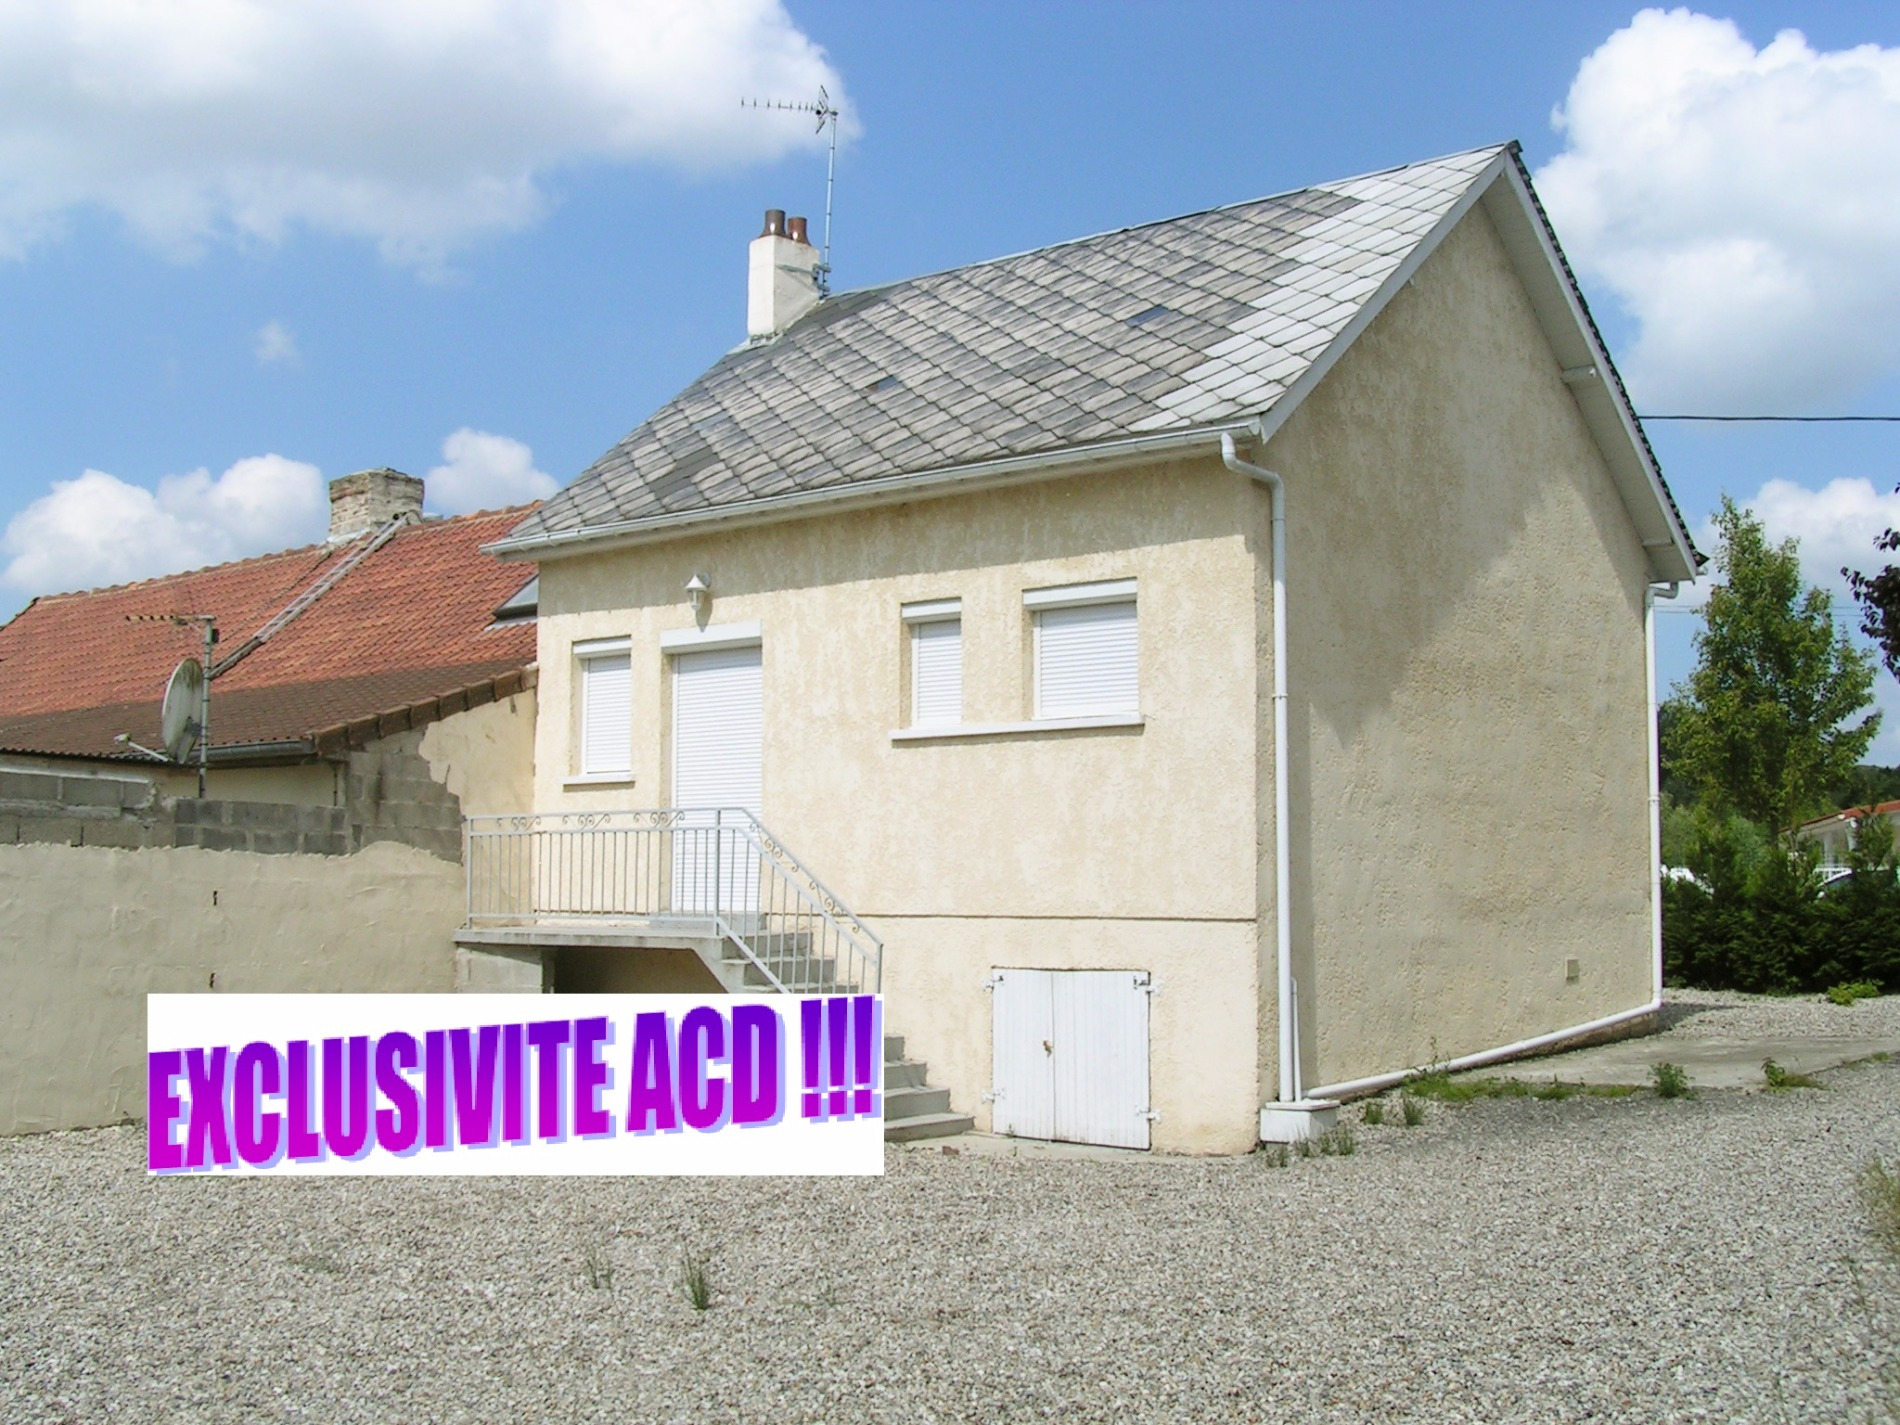 Acd immobilier exclusivit immobili re for Maison a louer par agence immobiliere